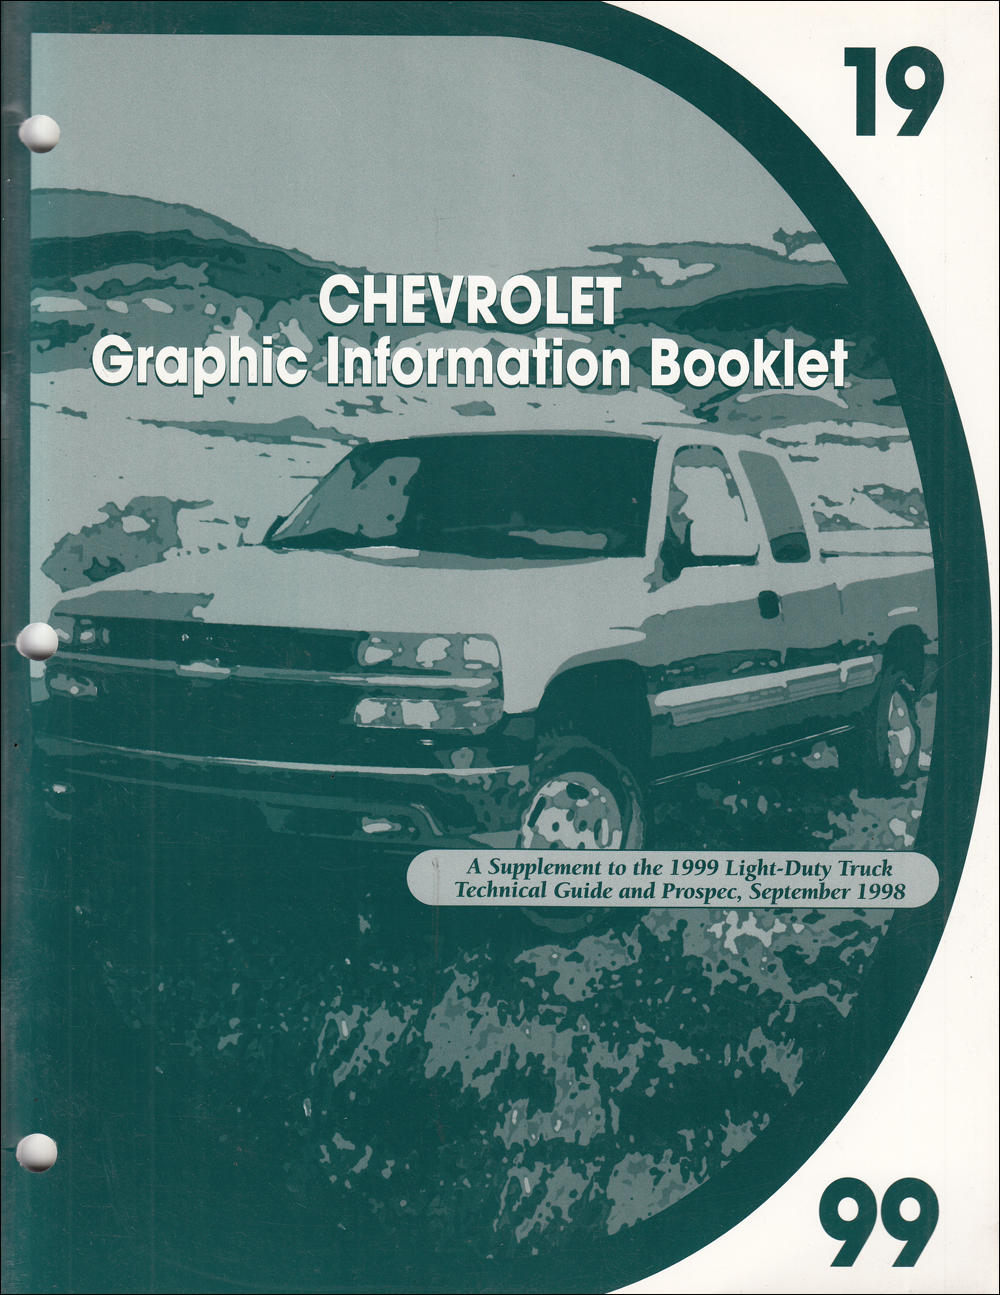 1999 Chevrolet Truck Graphic Booklet Original Dealer Album Supplement